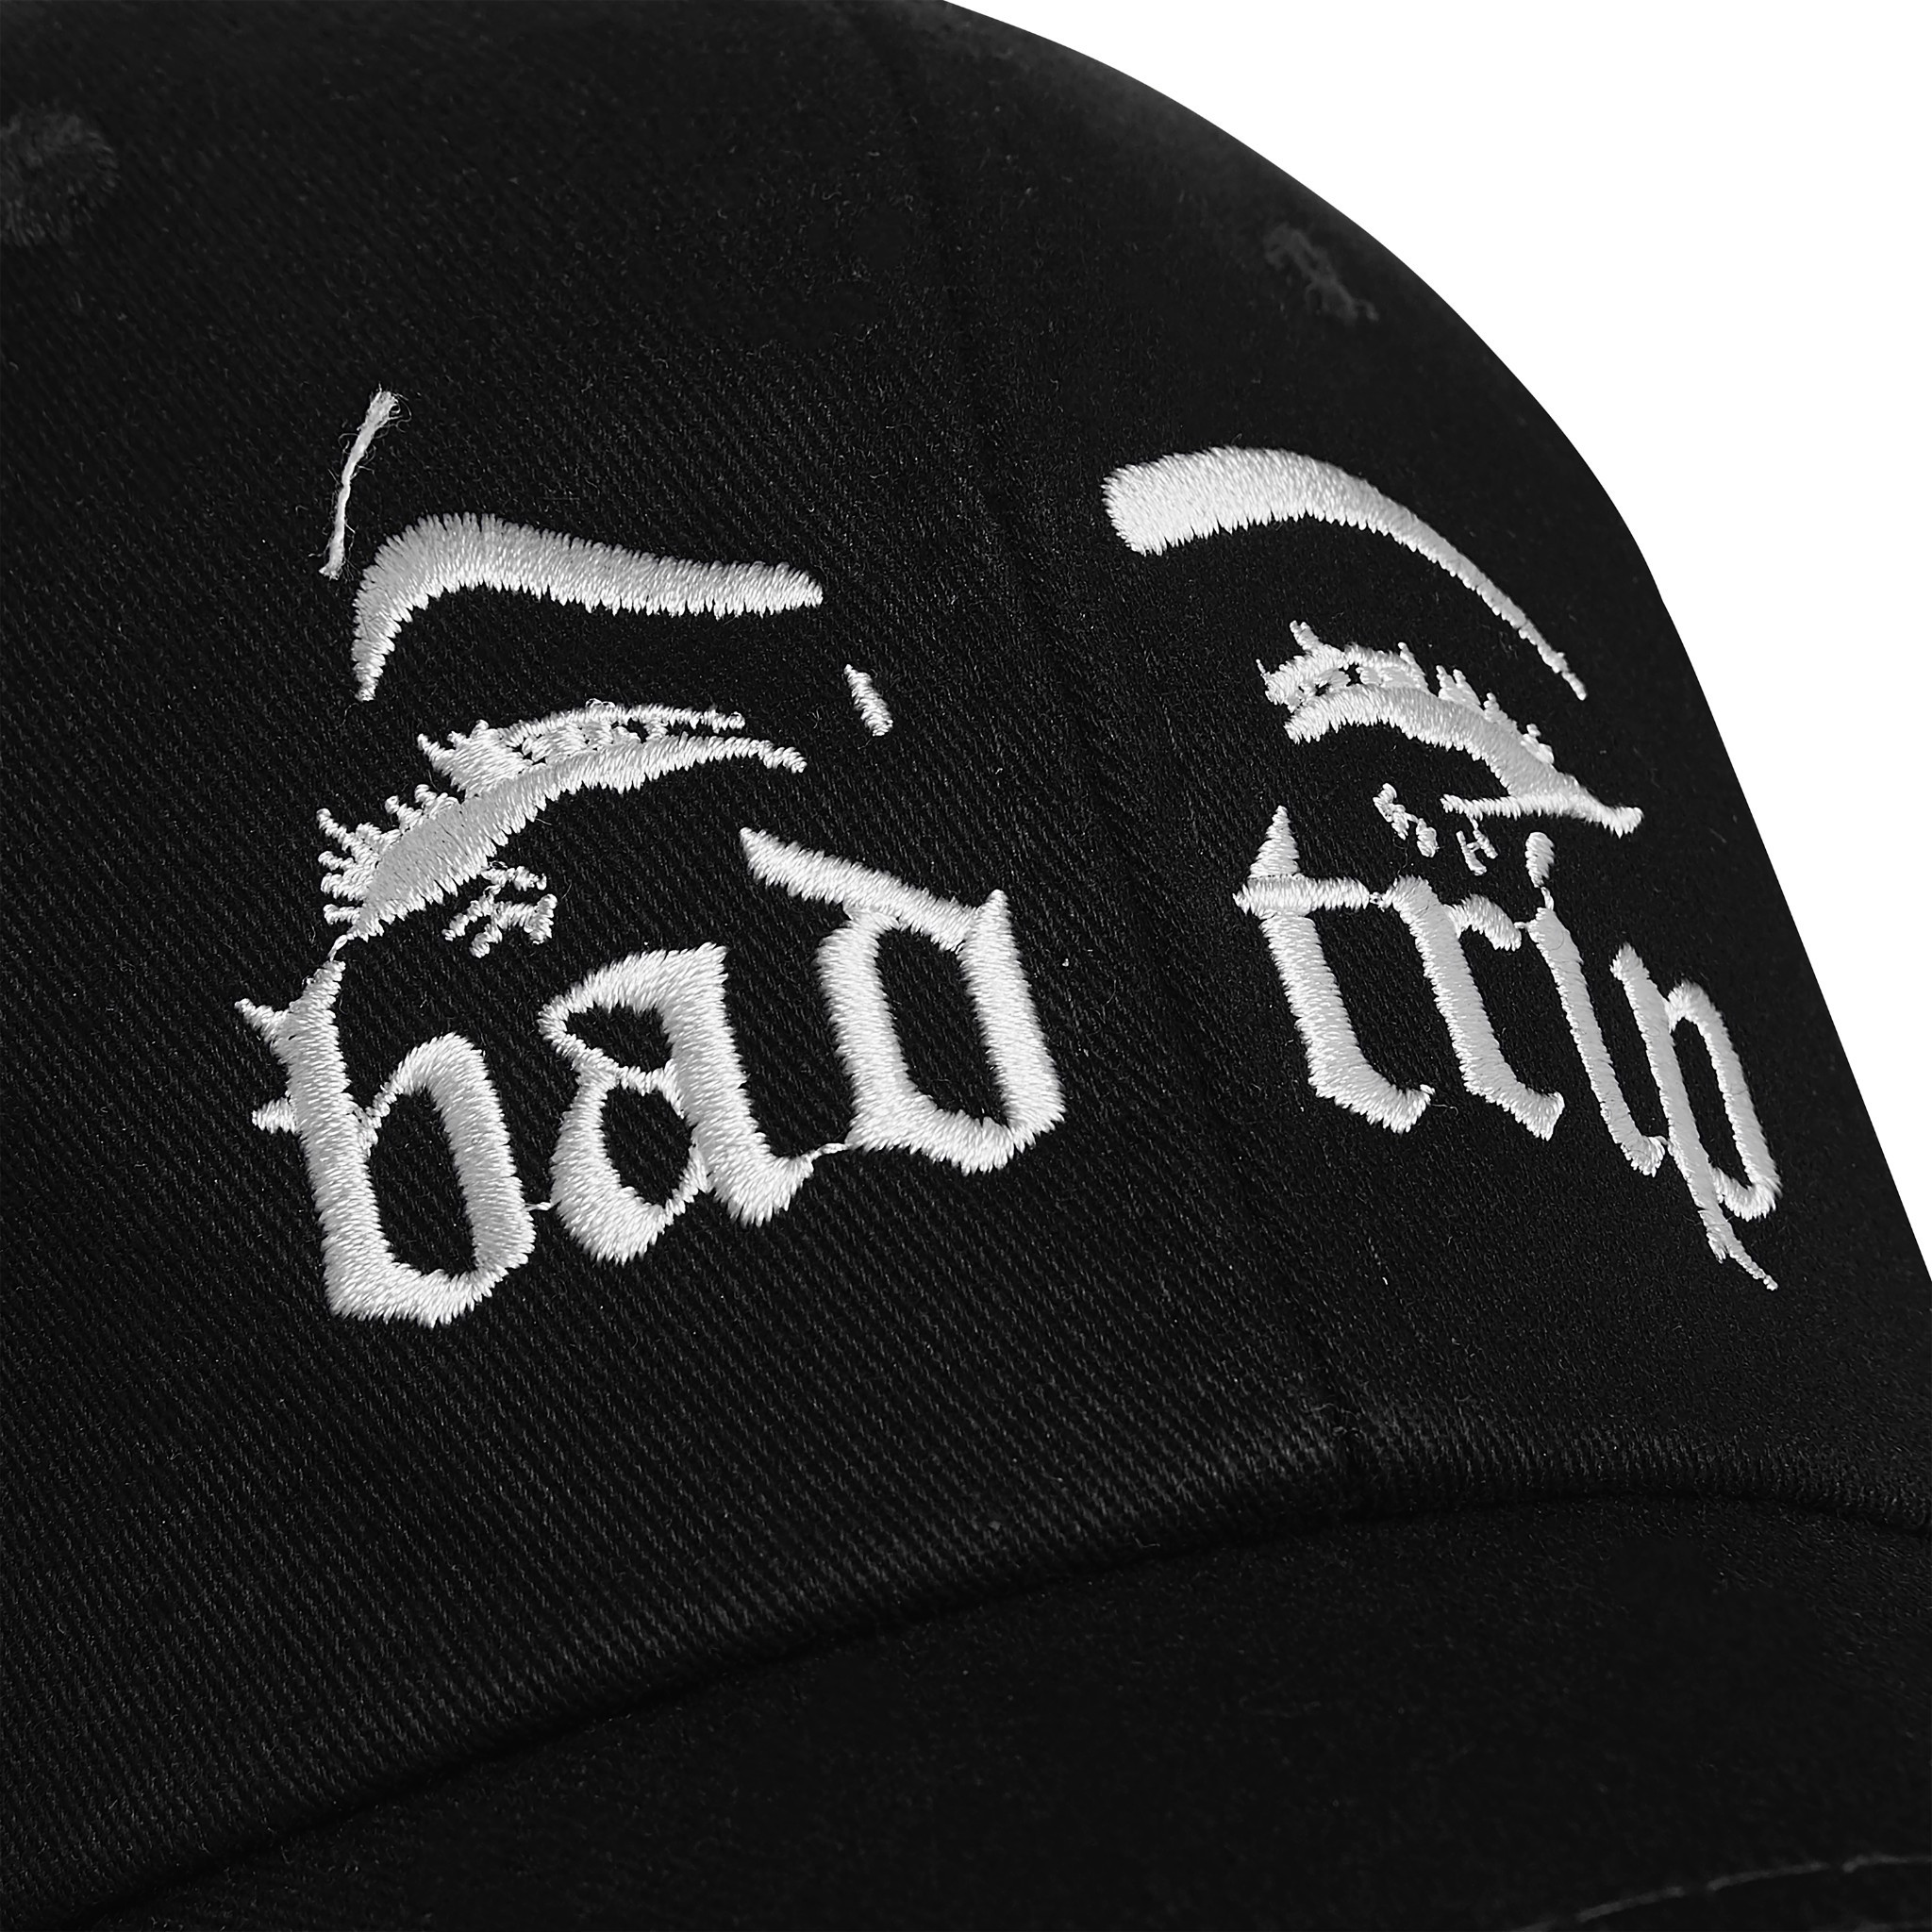 BAD TRIP CAP (BLACK) - WHITE WORDING